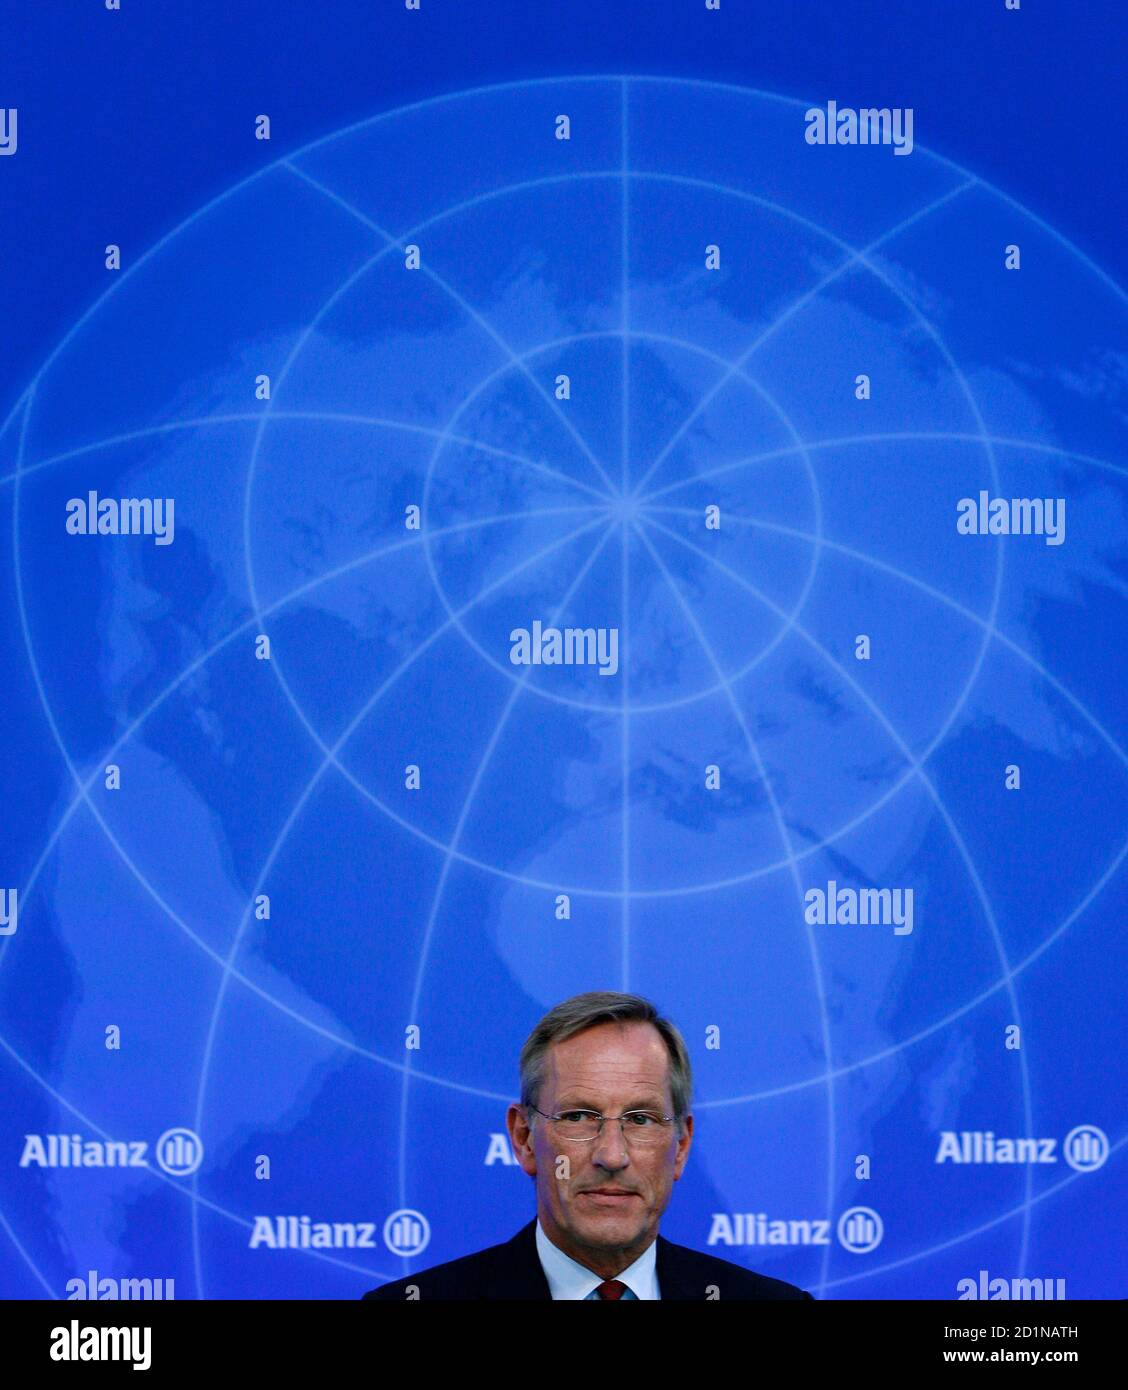 Michael Diekmann, CEO of Europe's biggest insurer Allianz, arrives for the company's annual news conference in Munich February 25, 2010. Allianz on Thursday forecast a stagnating year ahead, mired in low economic growth and high unemployment.   REUTERS/Michaela Rehle (GERMANY - Tags: BUSINESS) Stock Photo